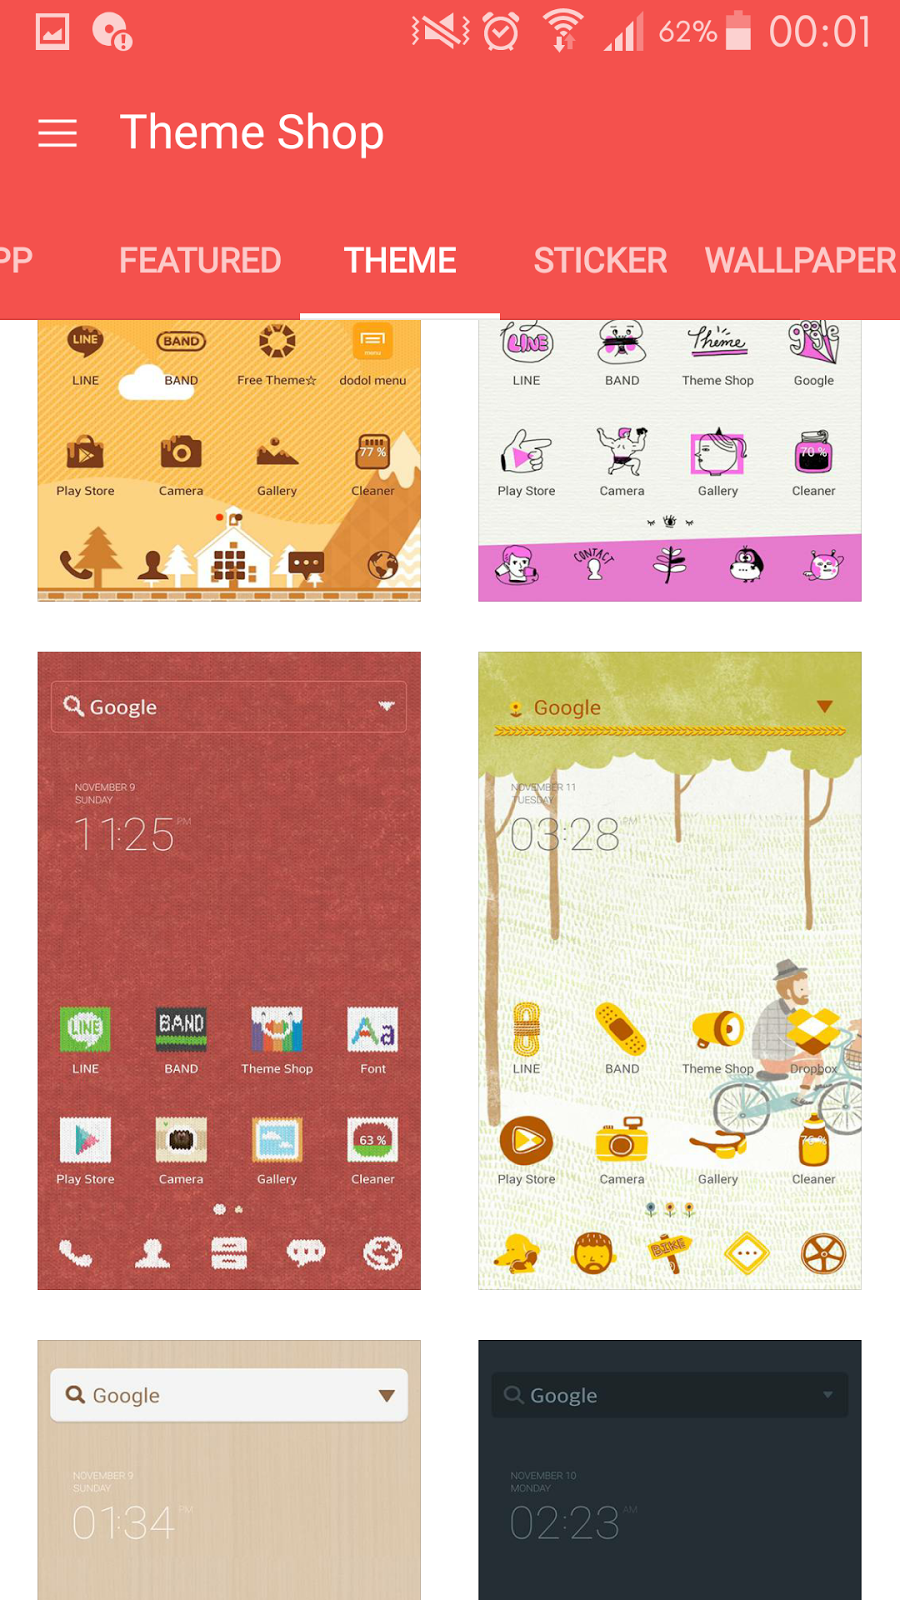 Google themes kpop - You Can Download It Easily With Just One Click And Most Impotantly It Is Free Of Charge Other Than Selecting The Themes We Also Could Adjust The Size Of